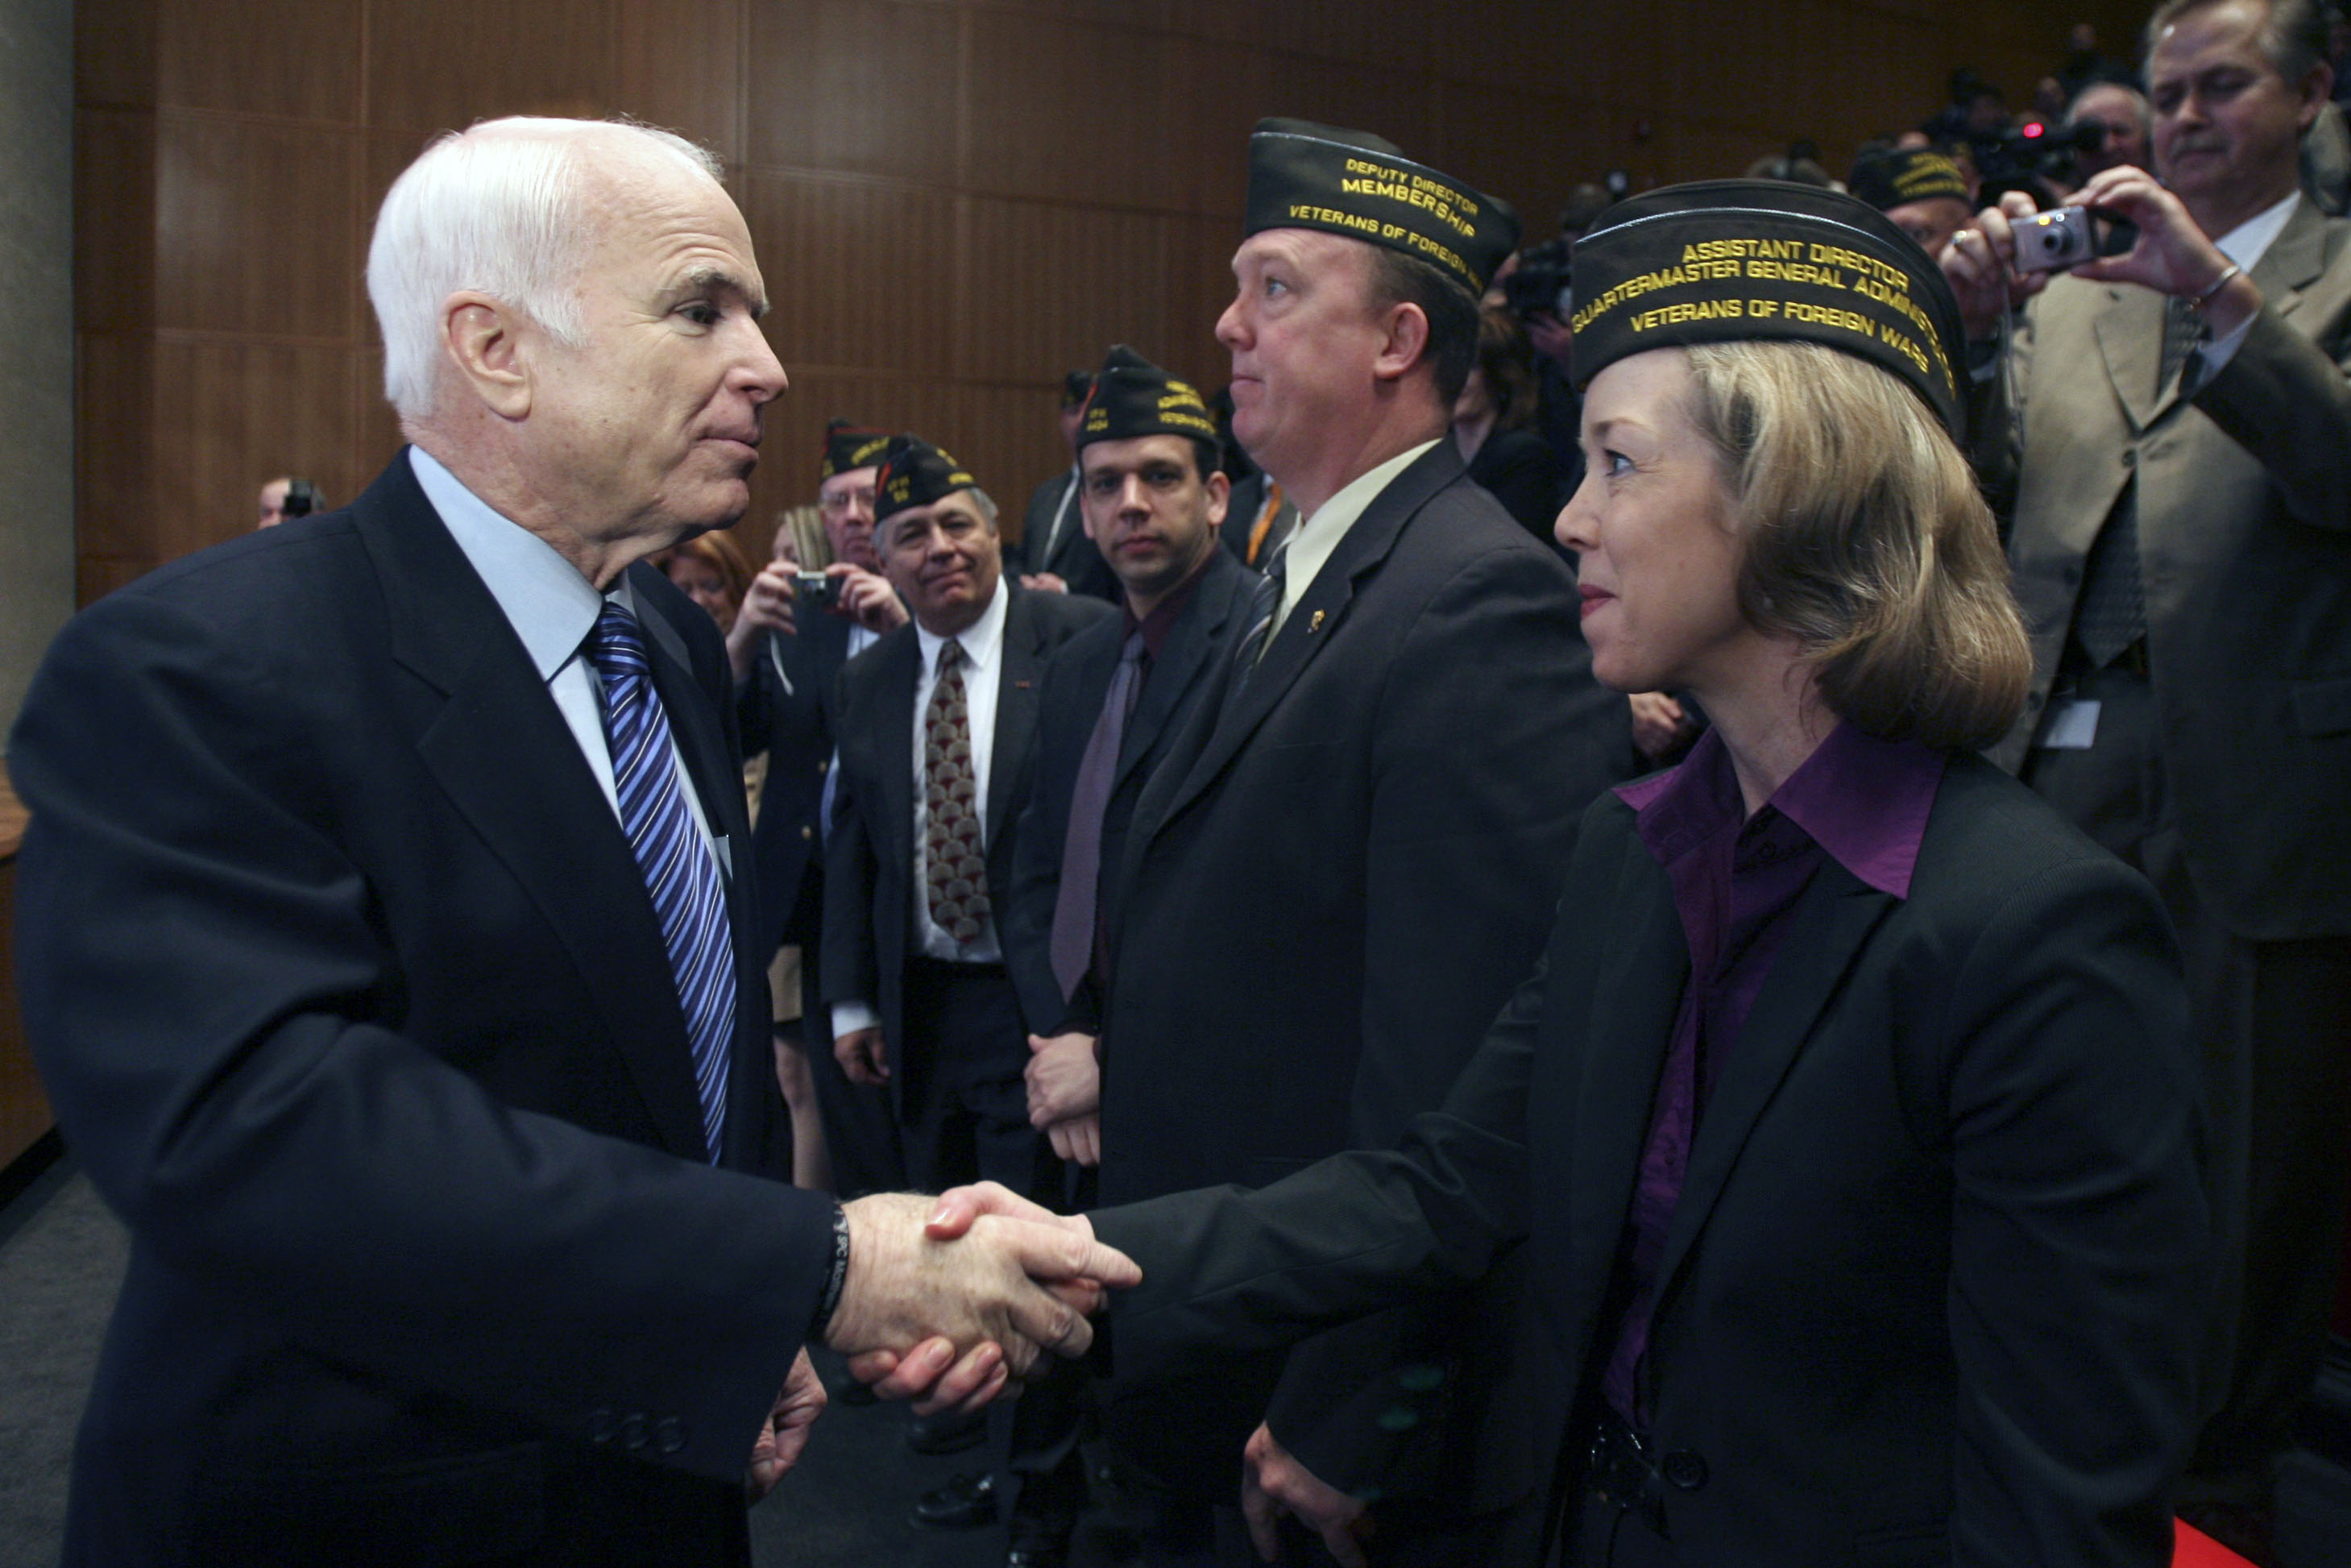 Sen. John McCain, R-Ariz., left, greets veterans who were in the audience after delivering a speech at the National World War I Museum on April 7, 2008, in Kansas City, Mo. (Mary Altaffer/AP)